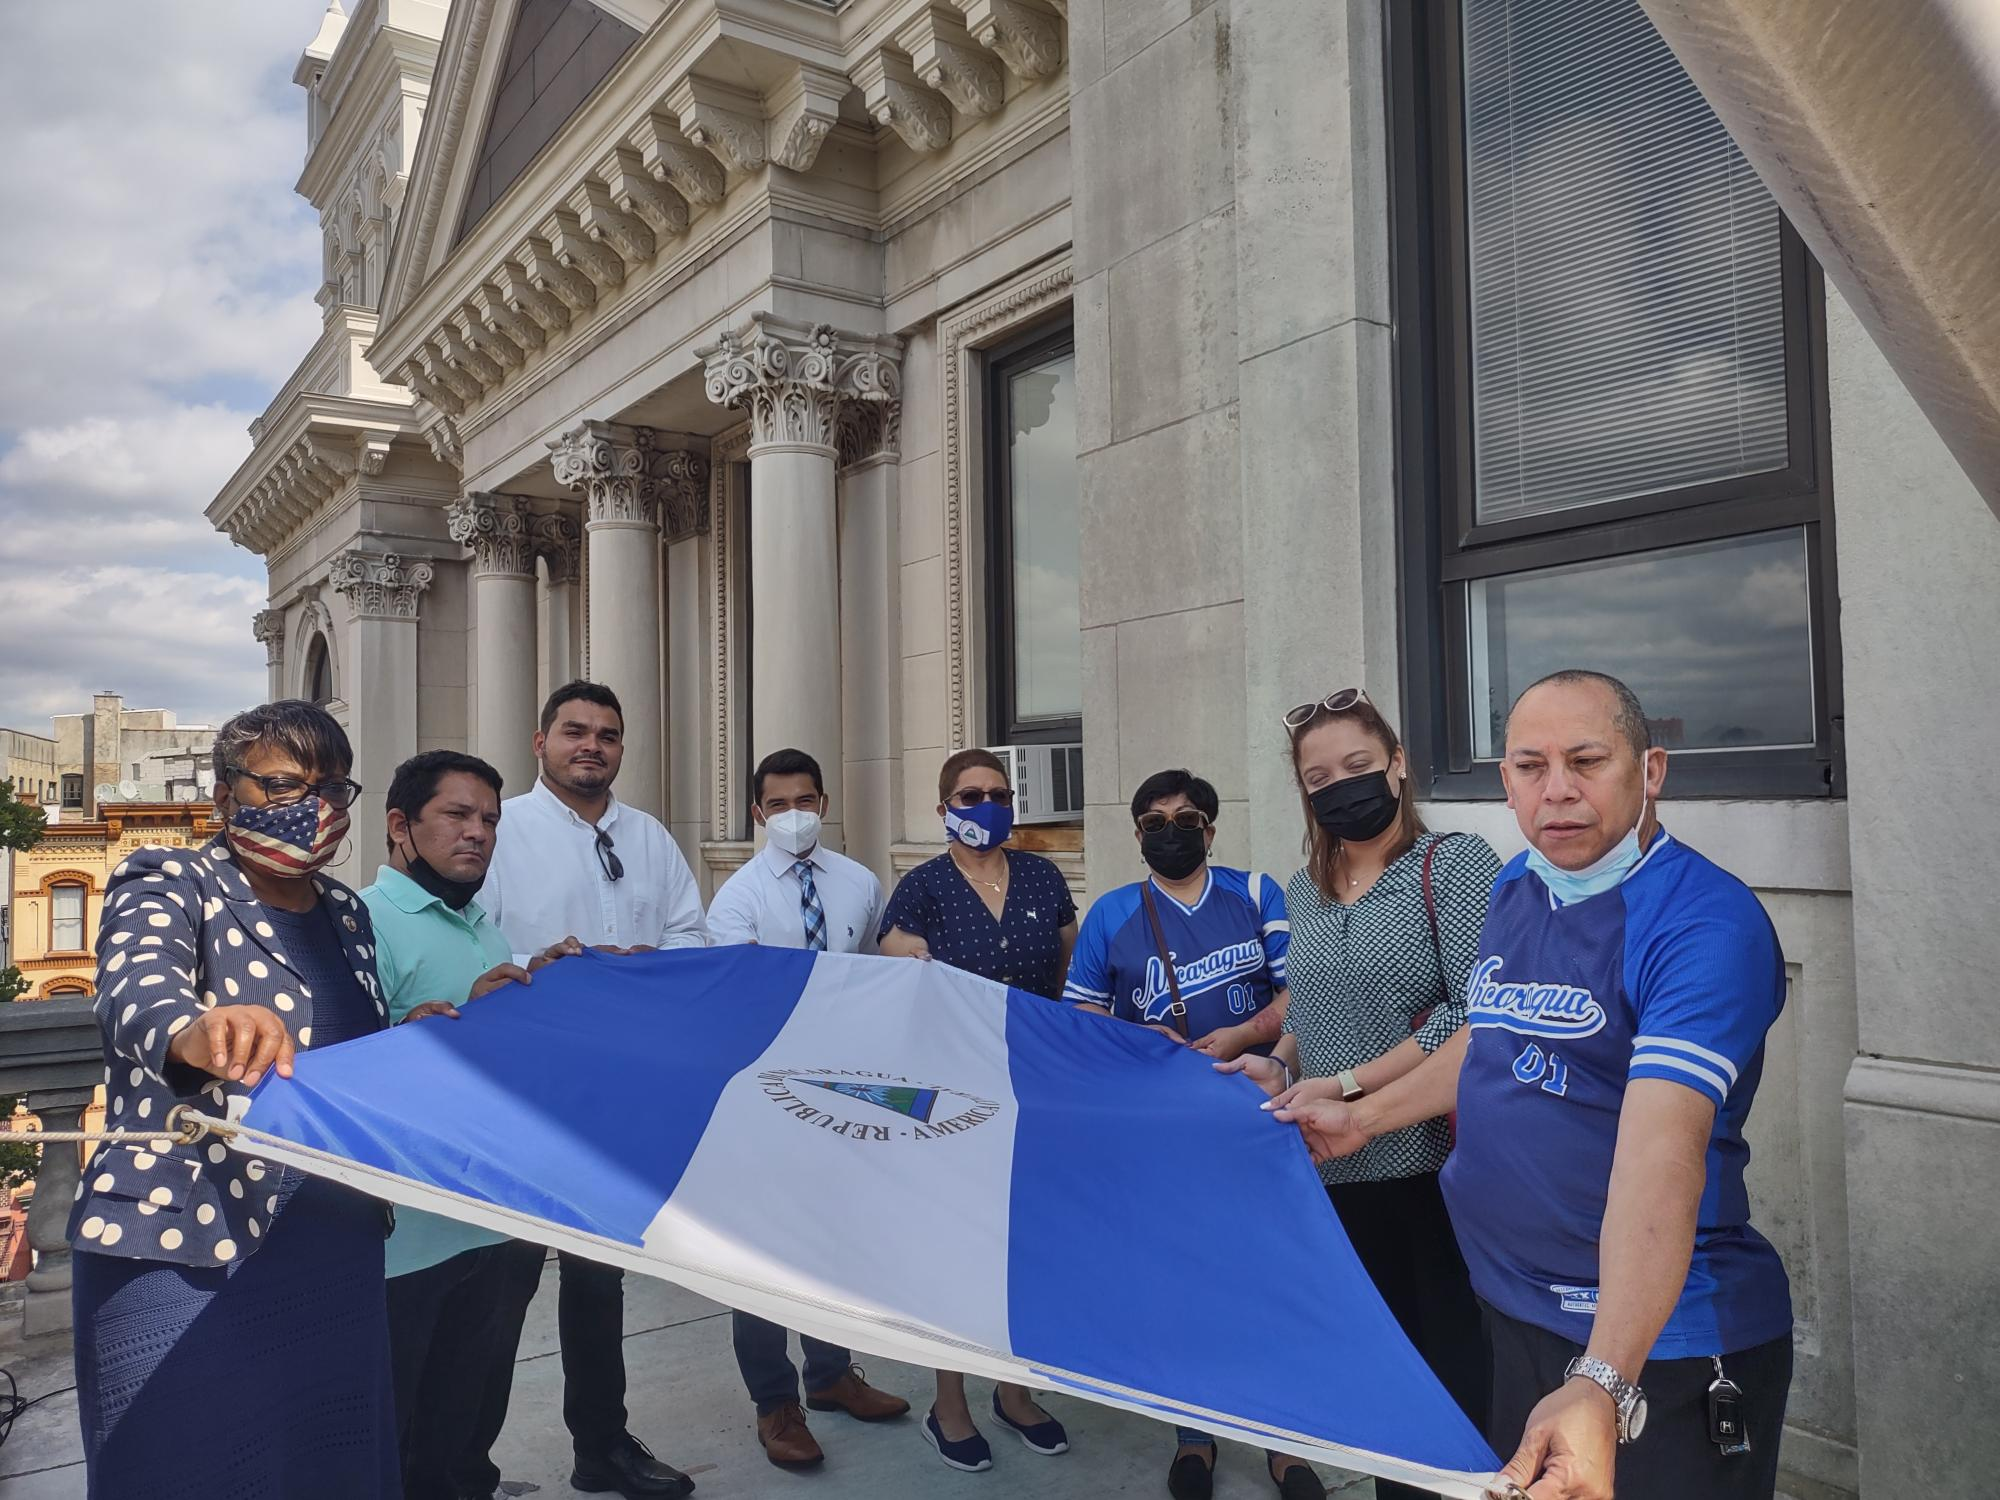 A group of citizens hold the flag of Nicaragua before it is raised. The flag is a bicolor with three horizontal bands of blue on the top and bottom and the white band in the middle. The country's National Coat of Arms is centered on the white band. The coat of arms features a triangle encircled by the words REPUBLICA DE NICARAGUA on the top and AMERICA CENTRAL on the bottom.